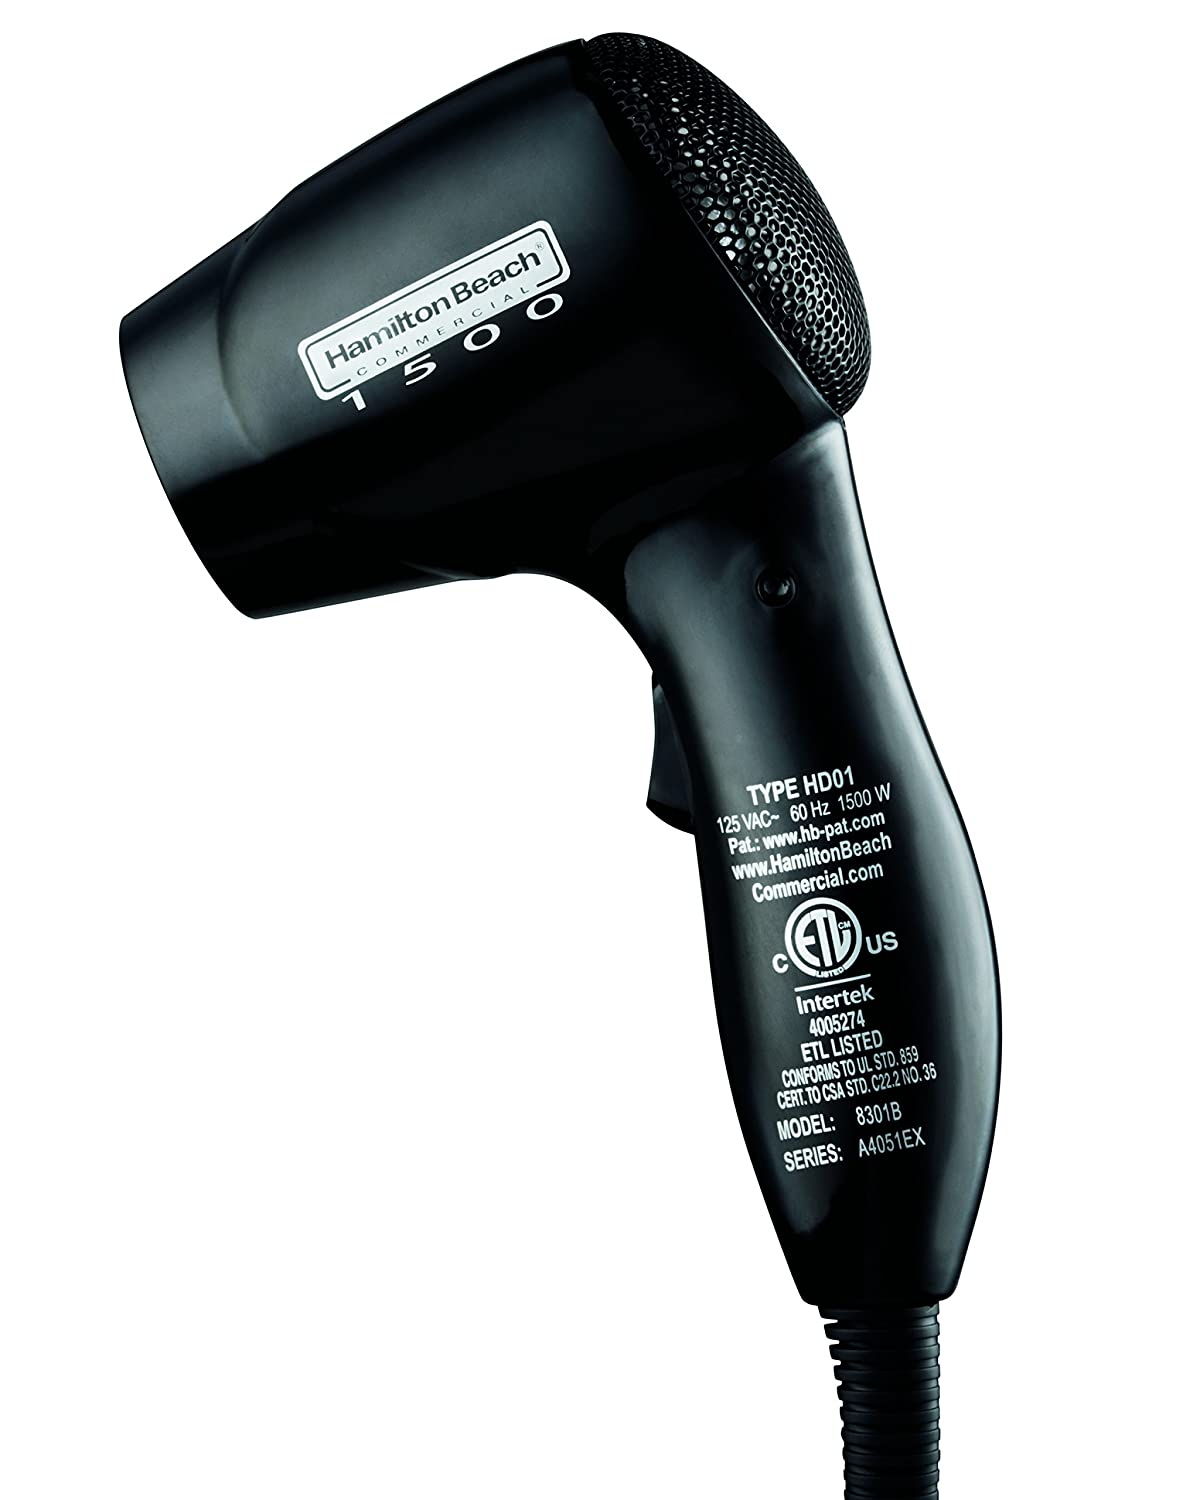 Hamilton Beach Commercial Hospitality Wall-Mounted Hair Dryer 1500 Watts Nightlight, Black 8301B